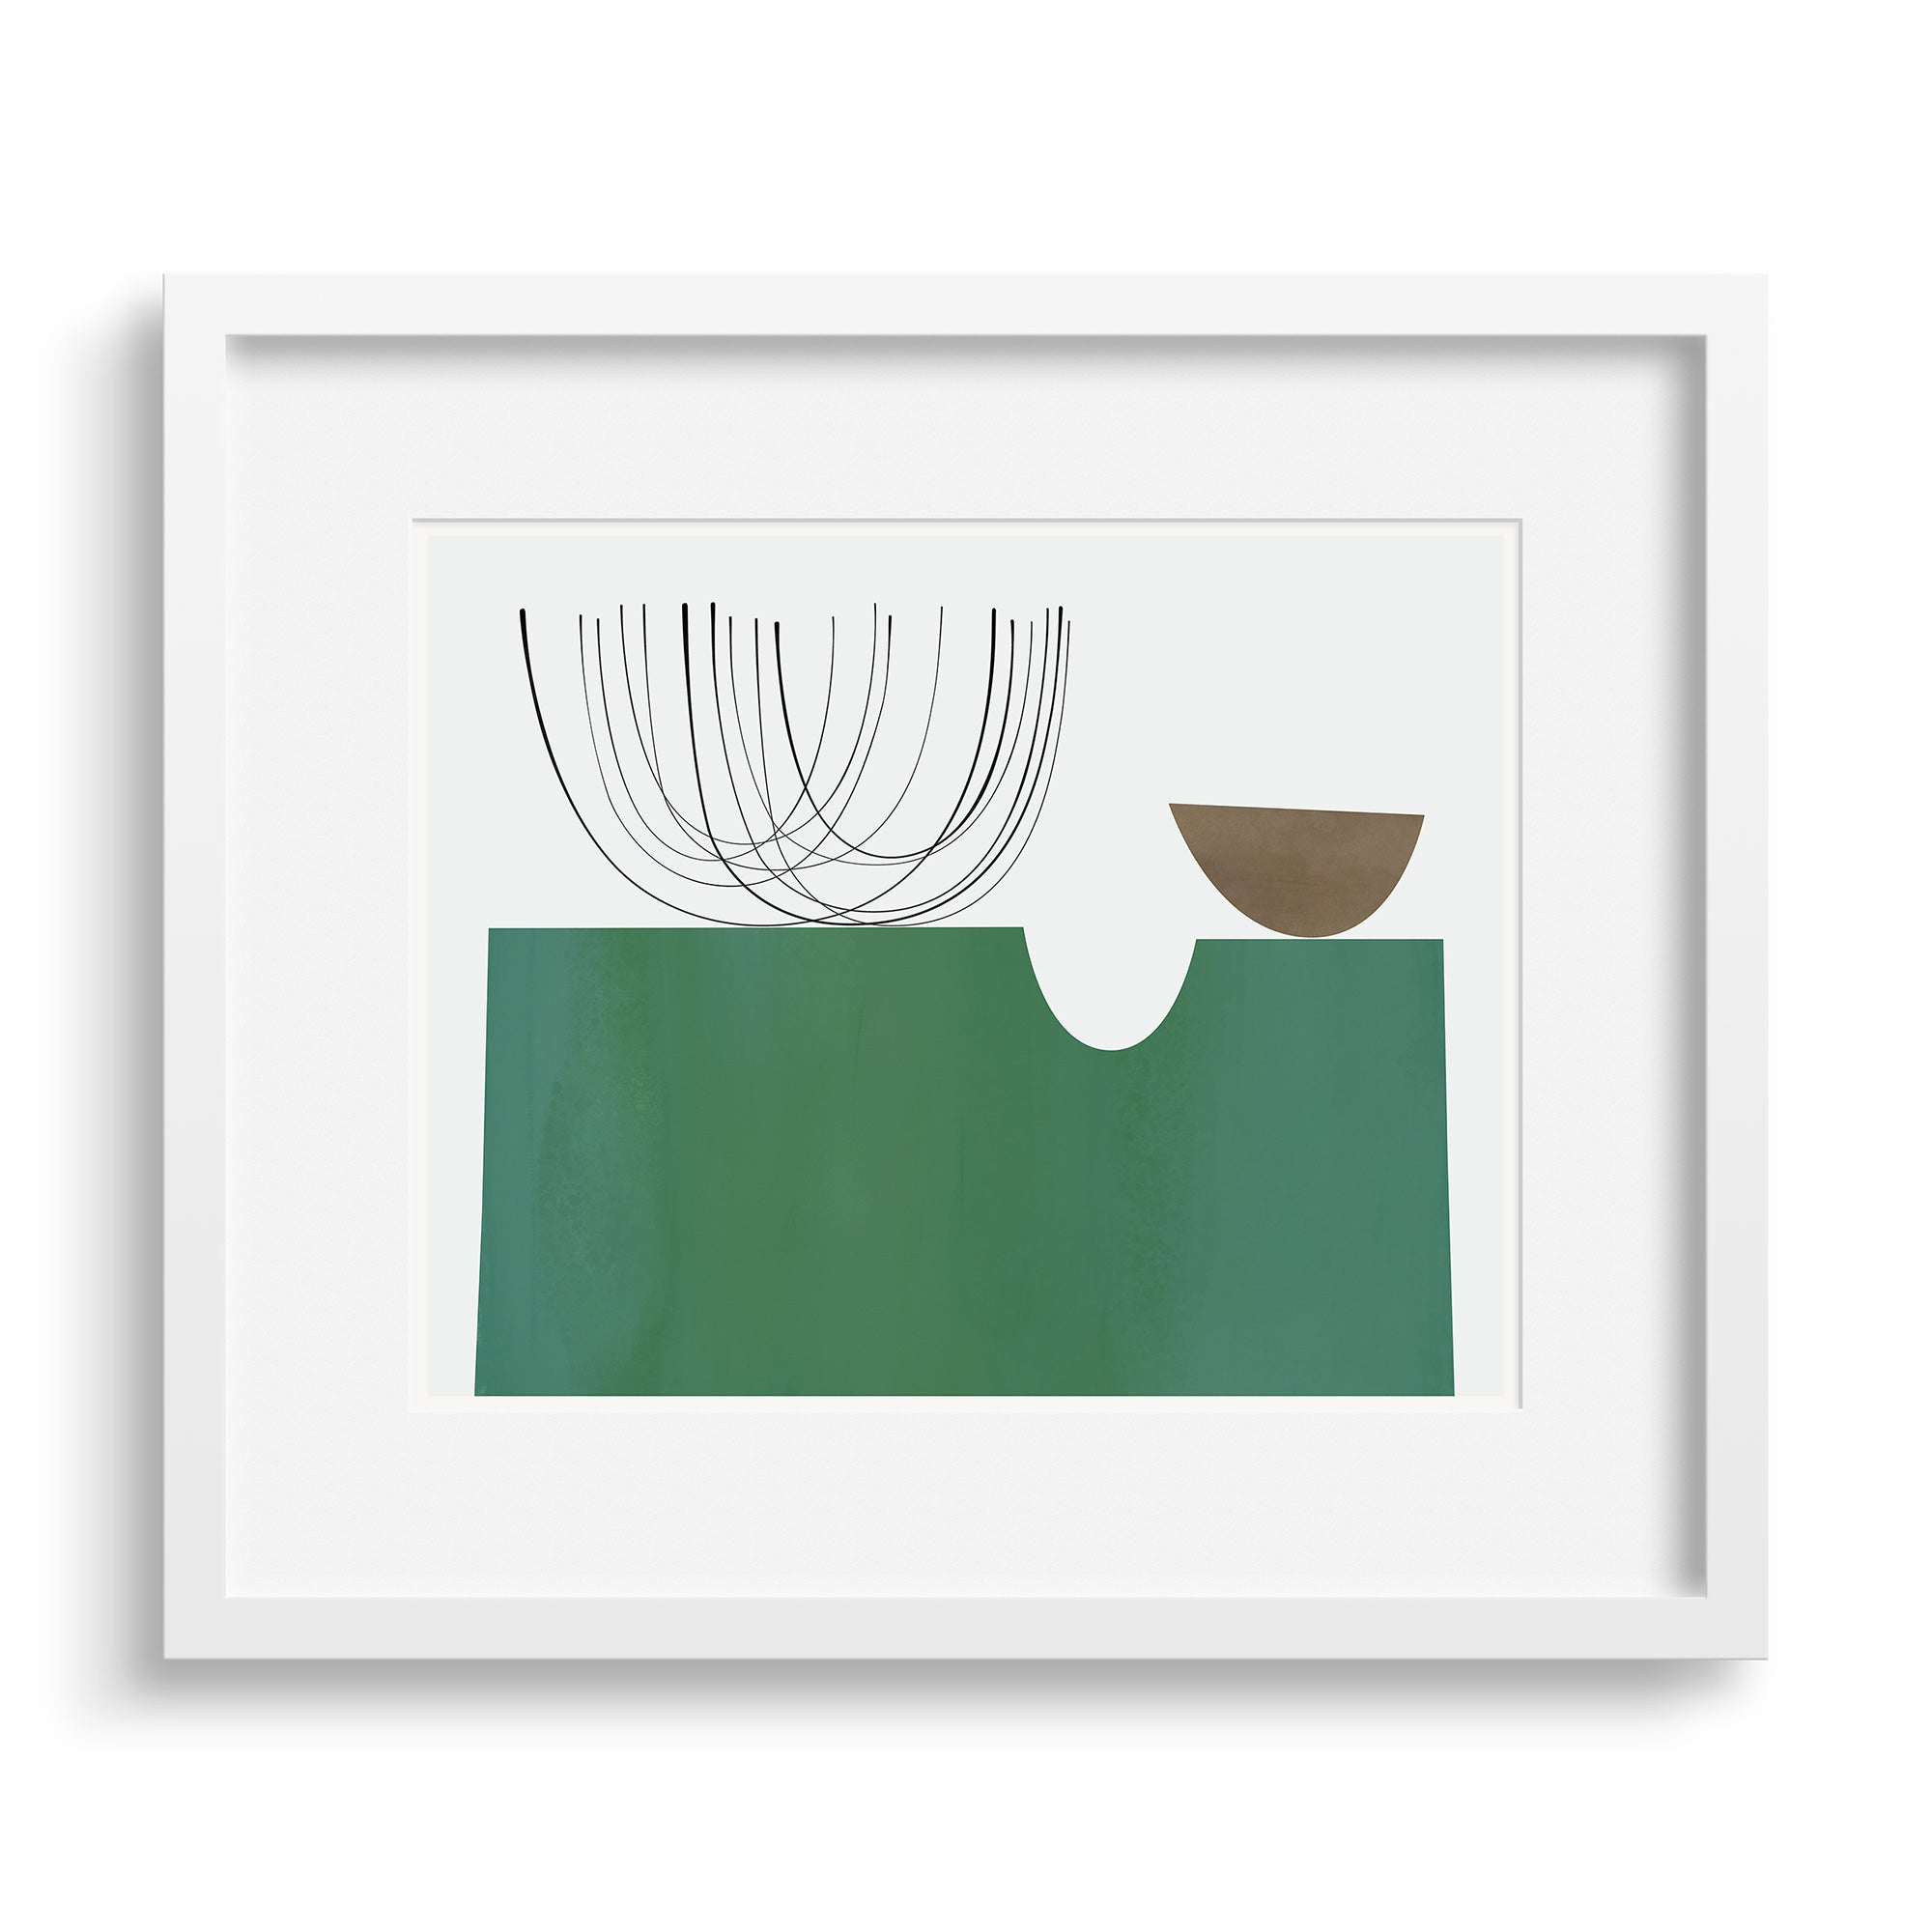 Walled Garden print by Janet Taylor in a white frame.